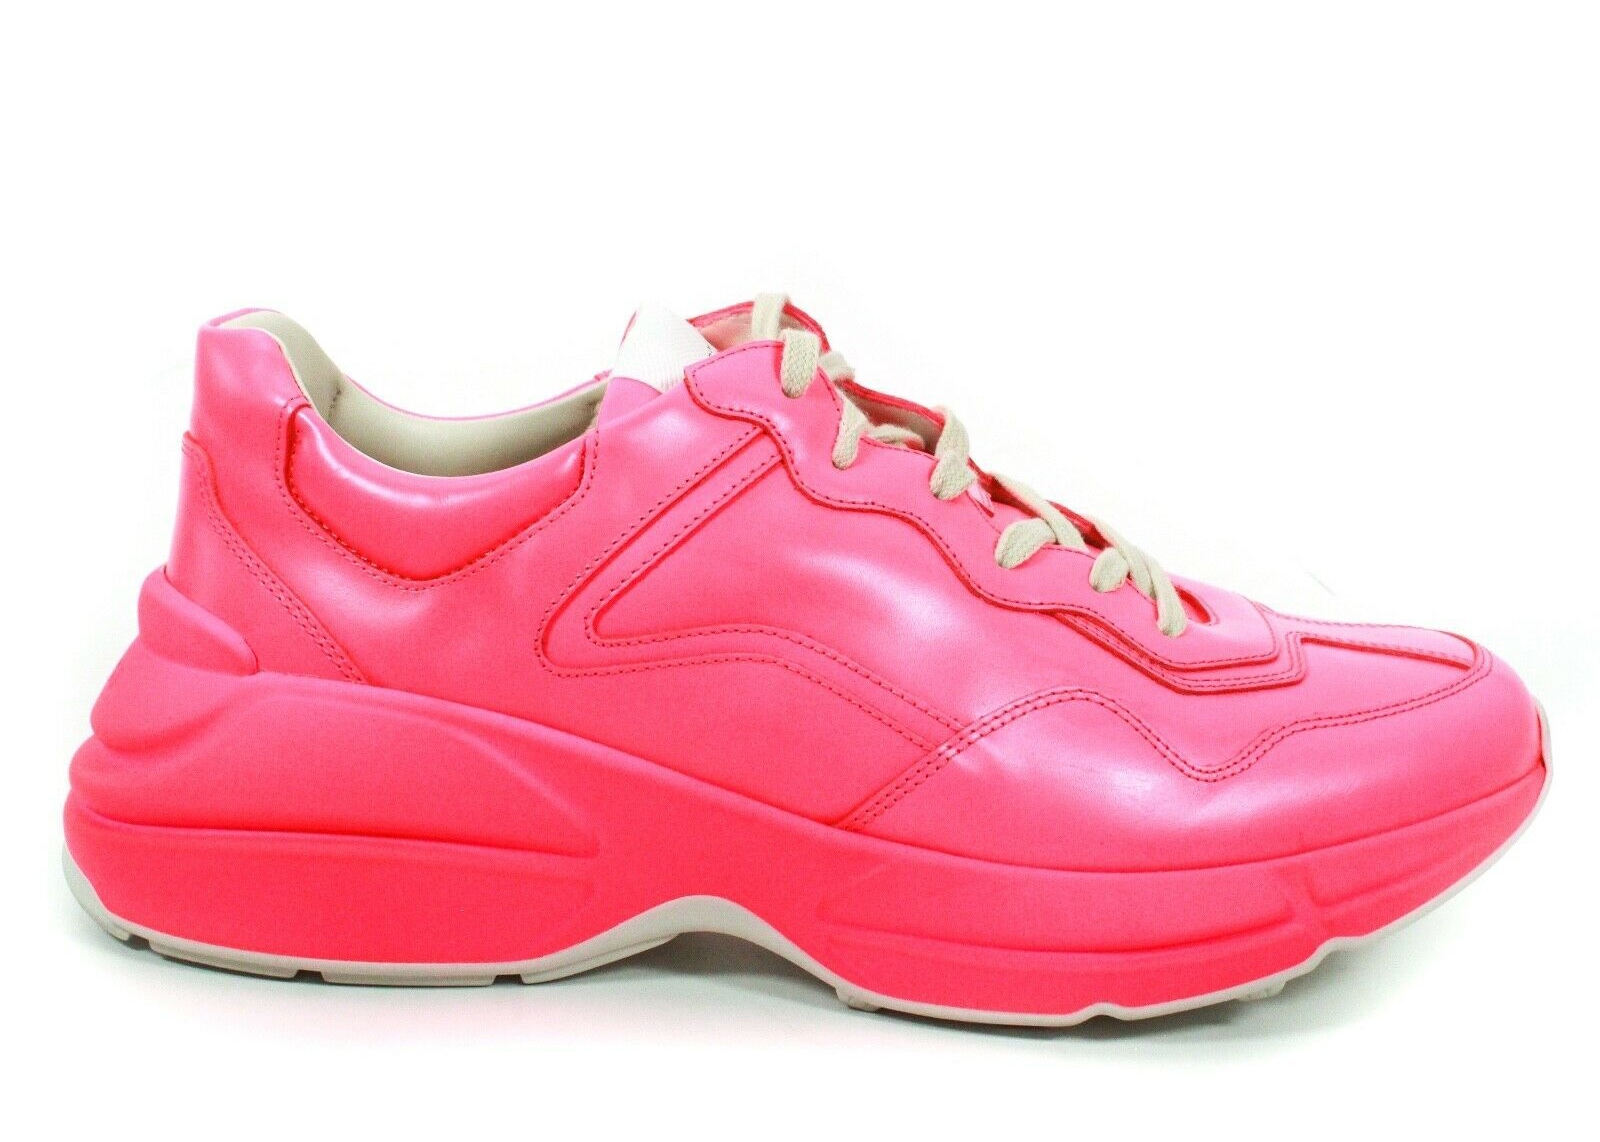 Gucci Rhyton Neon Pink - Sneakers